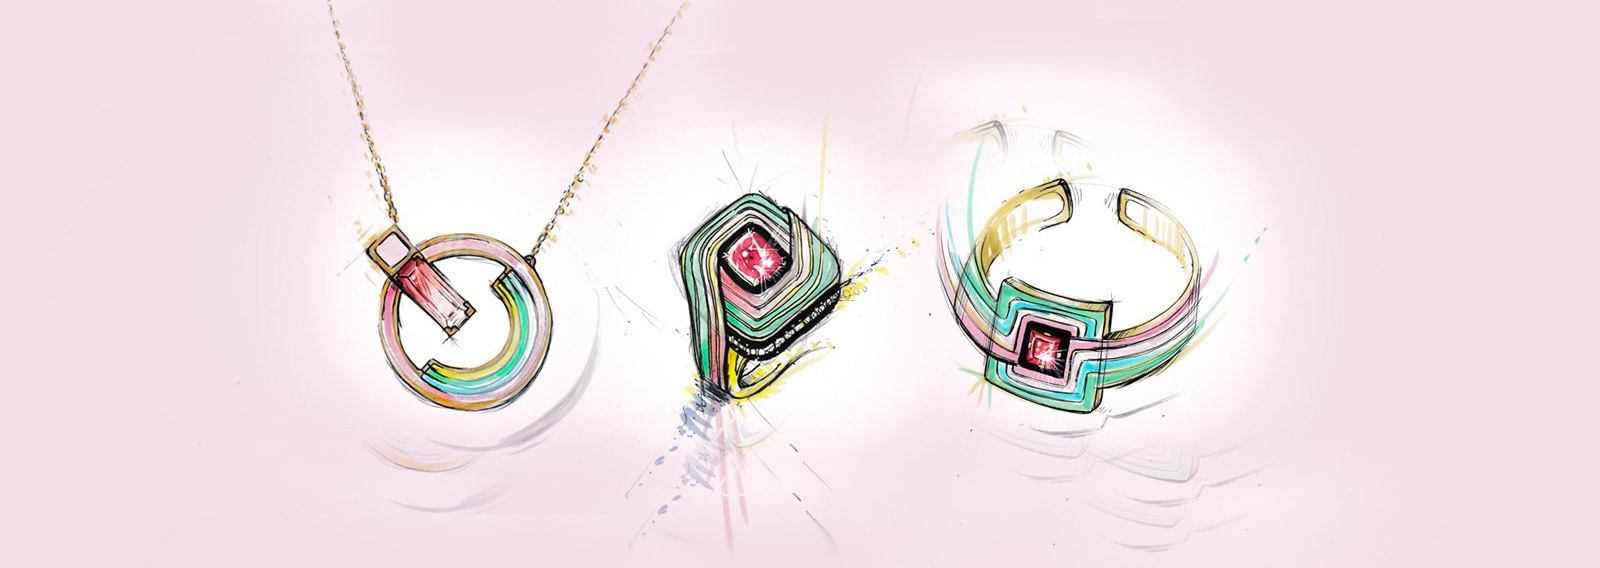 A selection of sketches from NUUN Jewels 'El Hada' collection